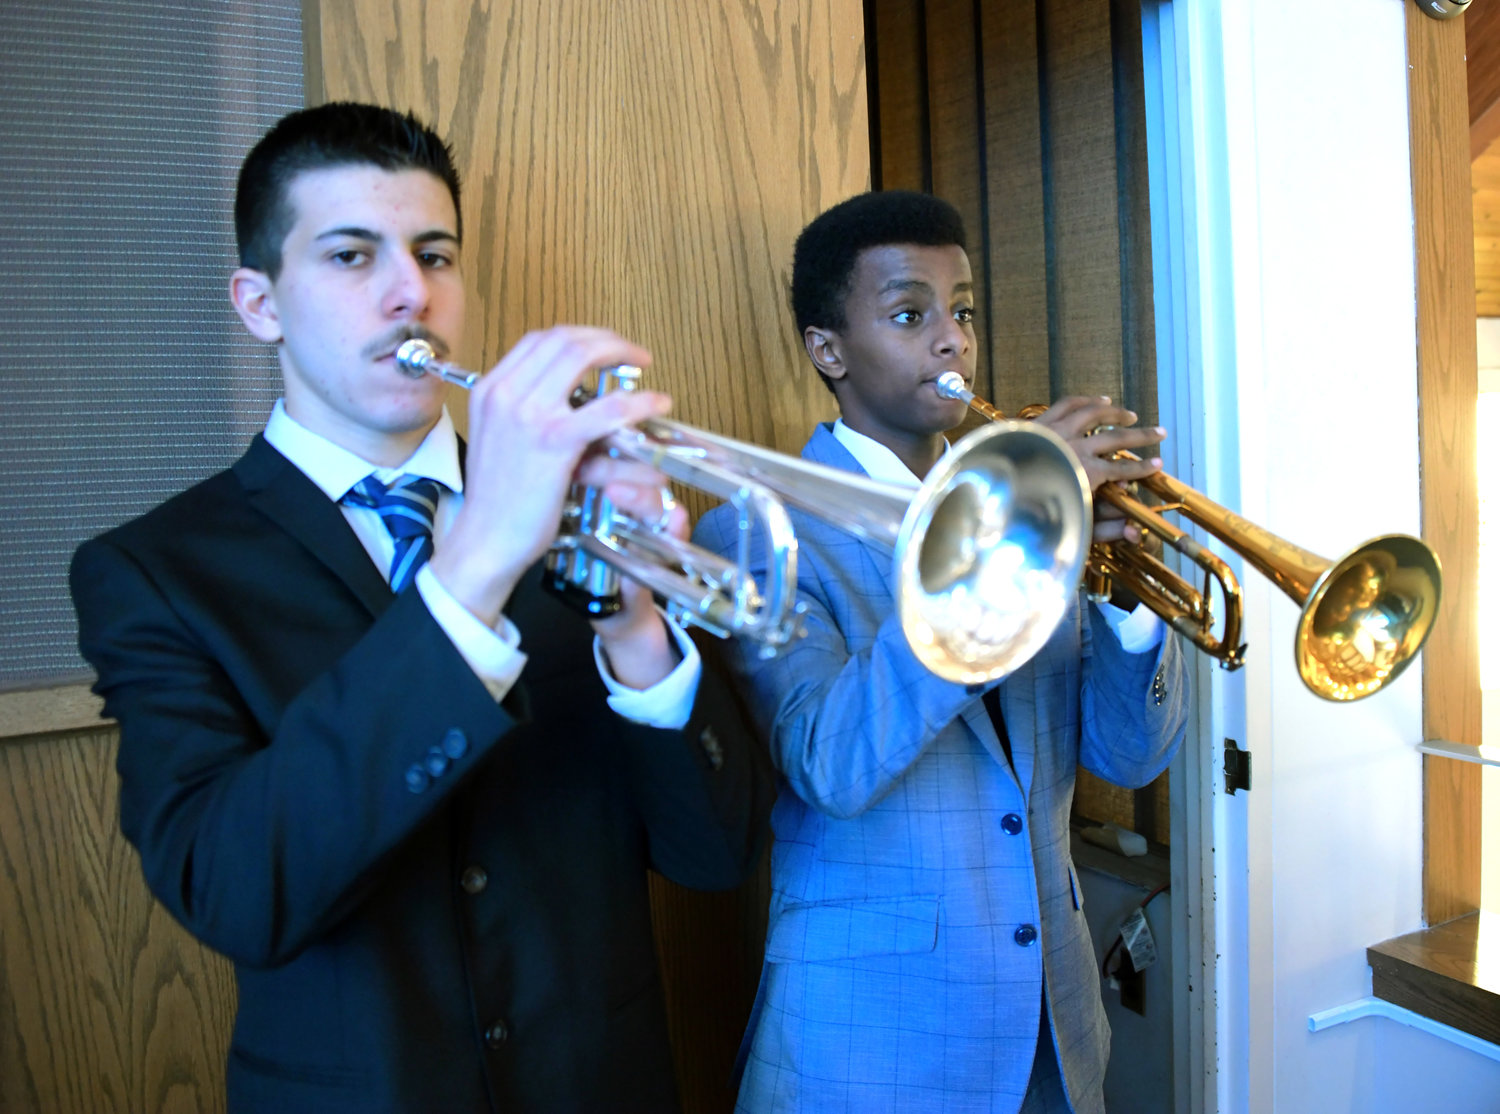 Peter Bennet and Josiah Ashalew played taps during the Four Chaplains ceremony.